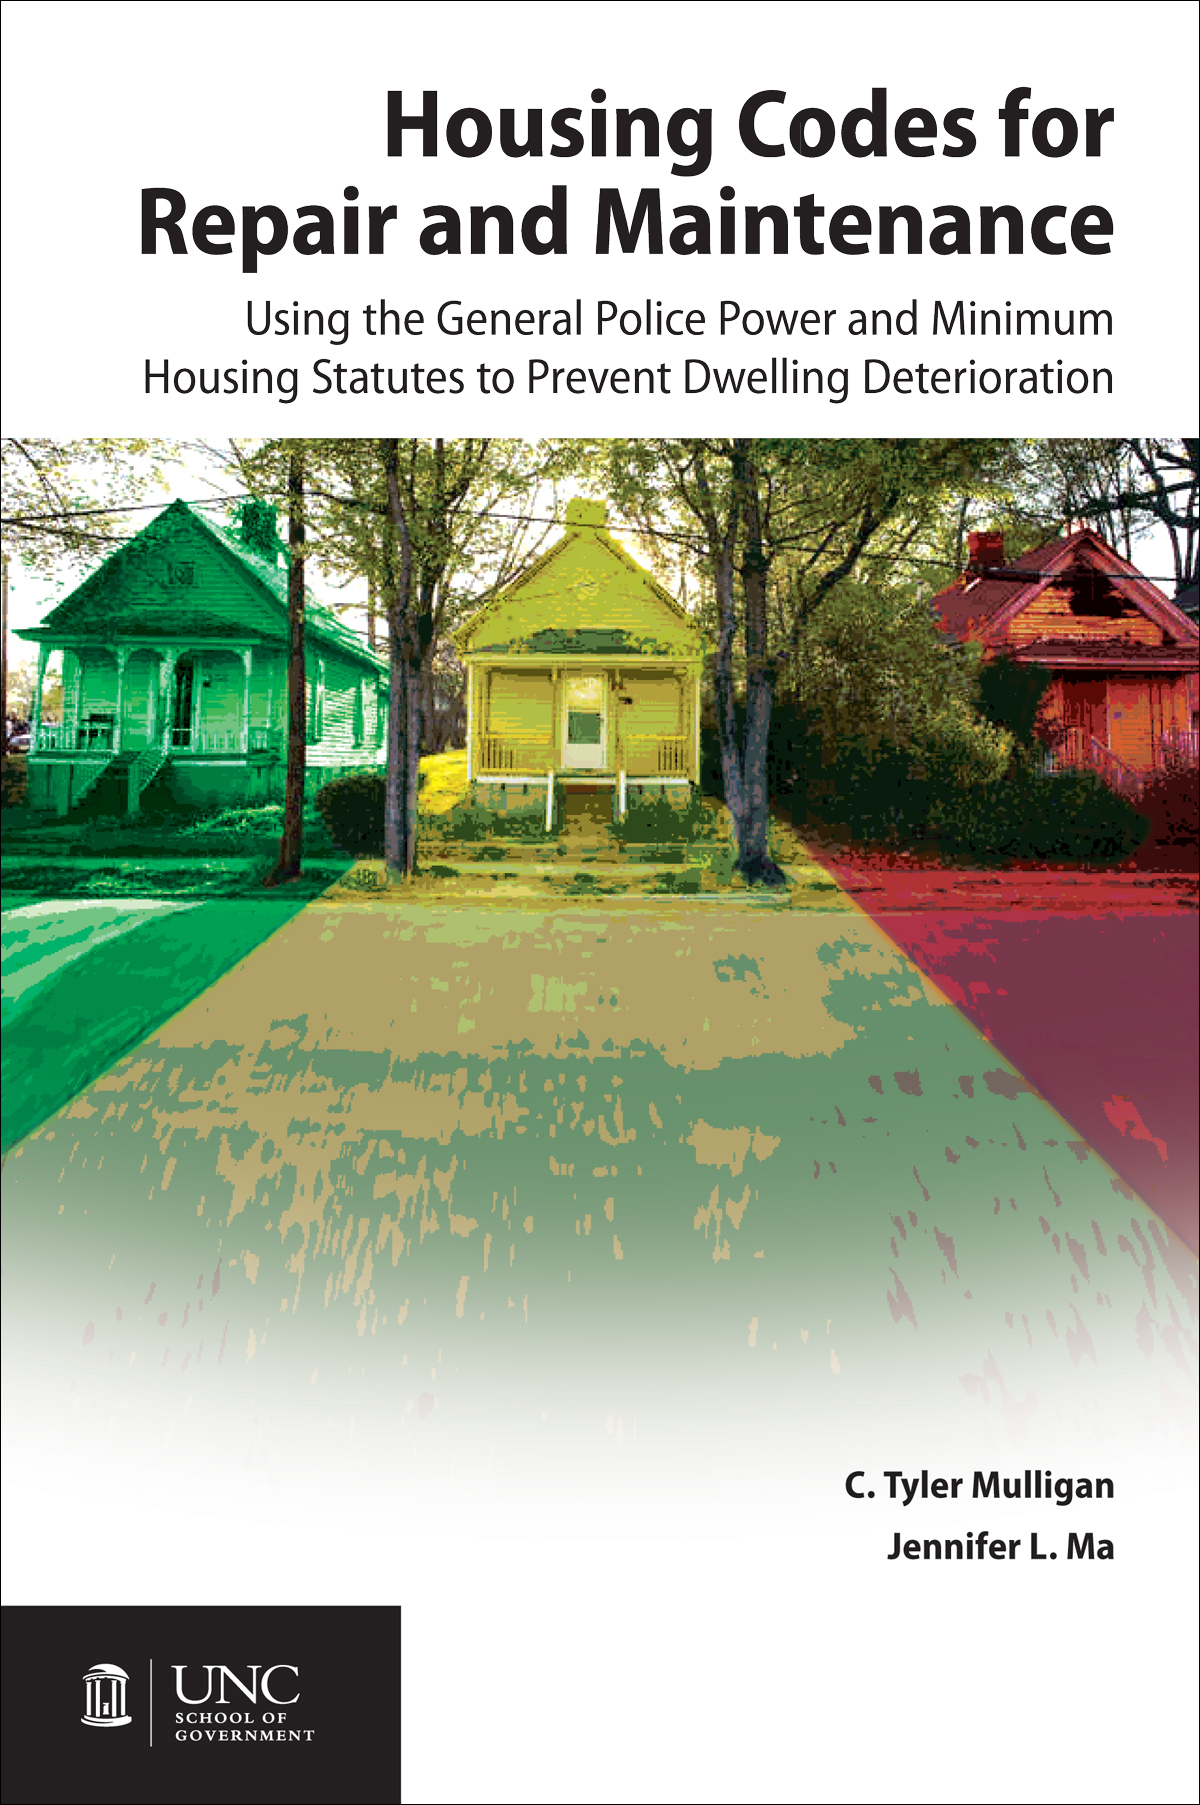 Cover image for Housing Codes for Repair and Maintenance: Using the General Police Power and Minimum Housing Statutes to Prevent Dwelling Deterioration (Hard Copy Format)